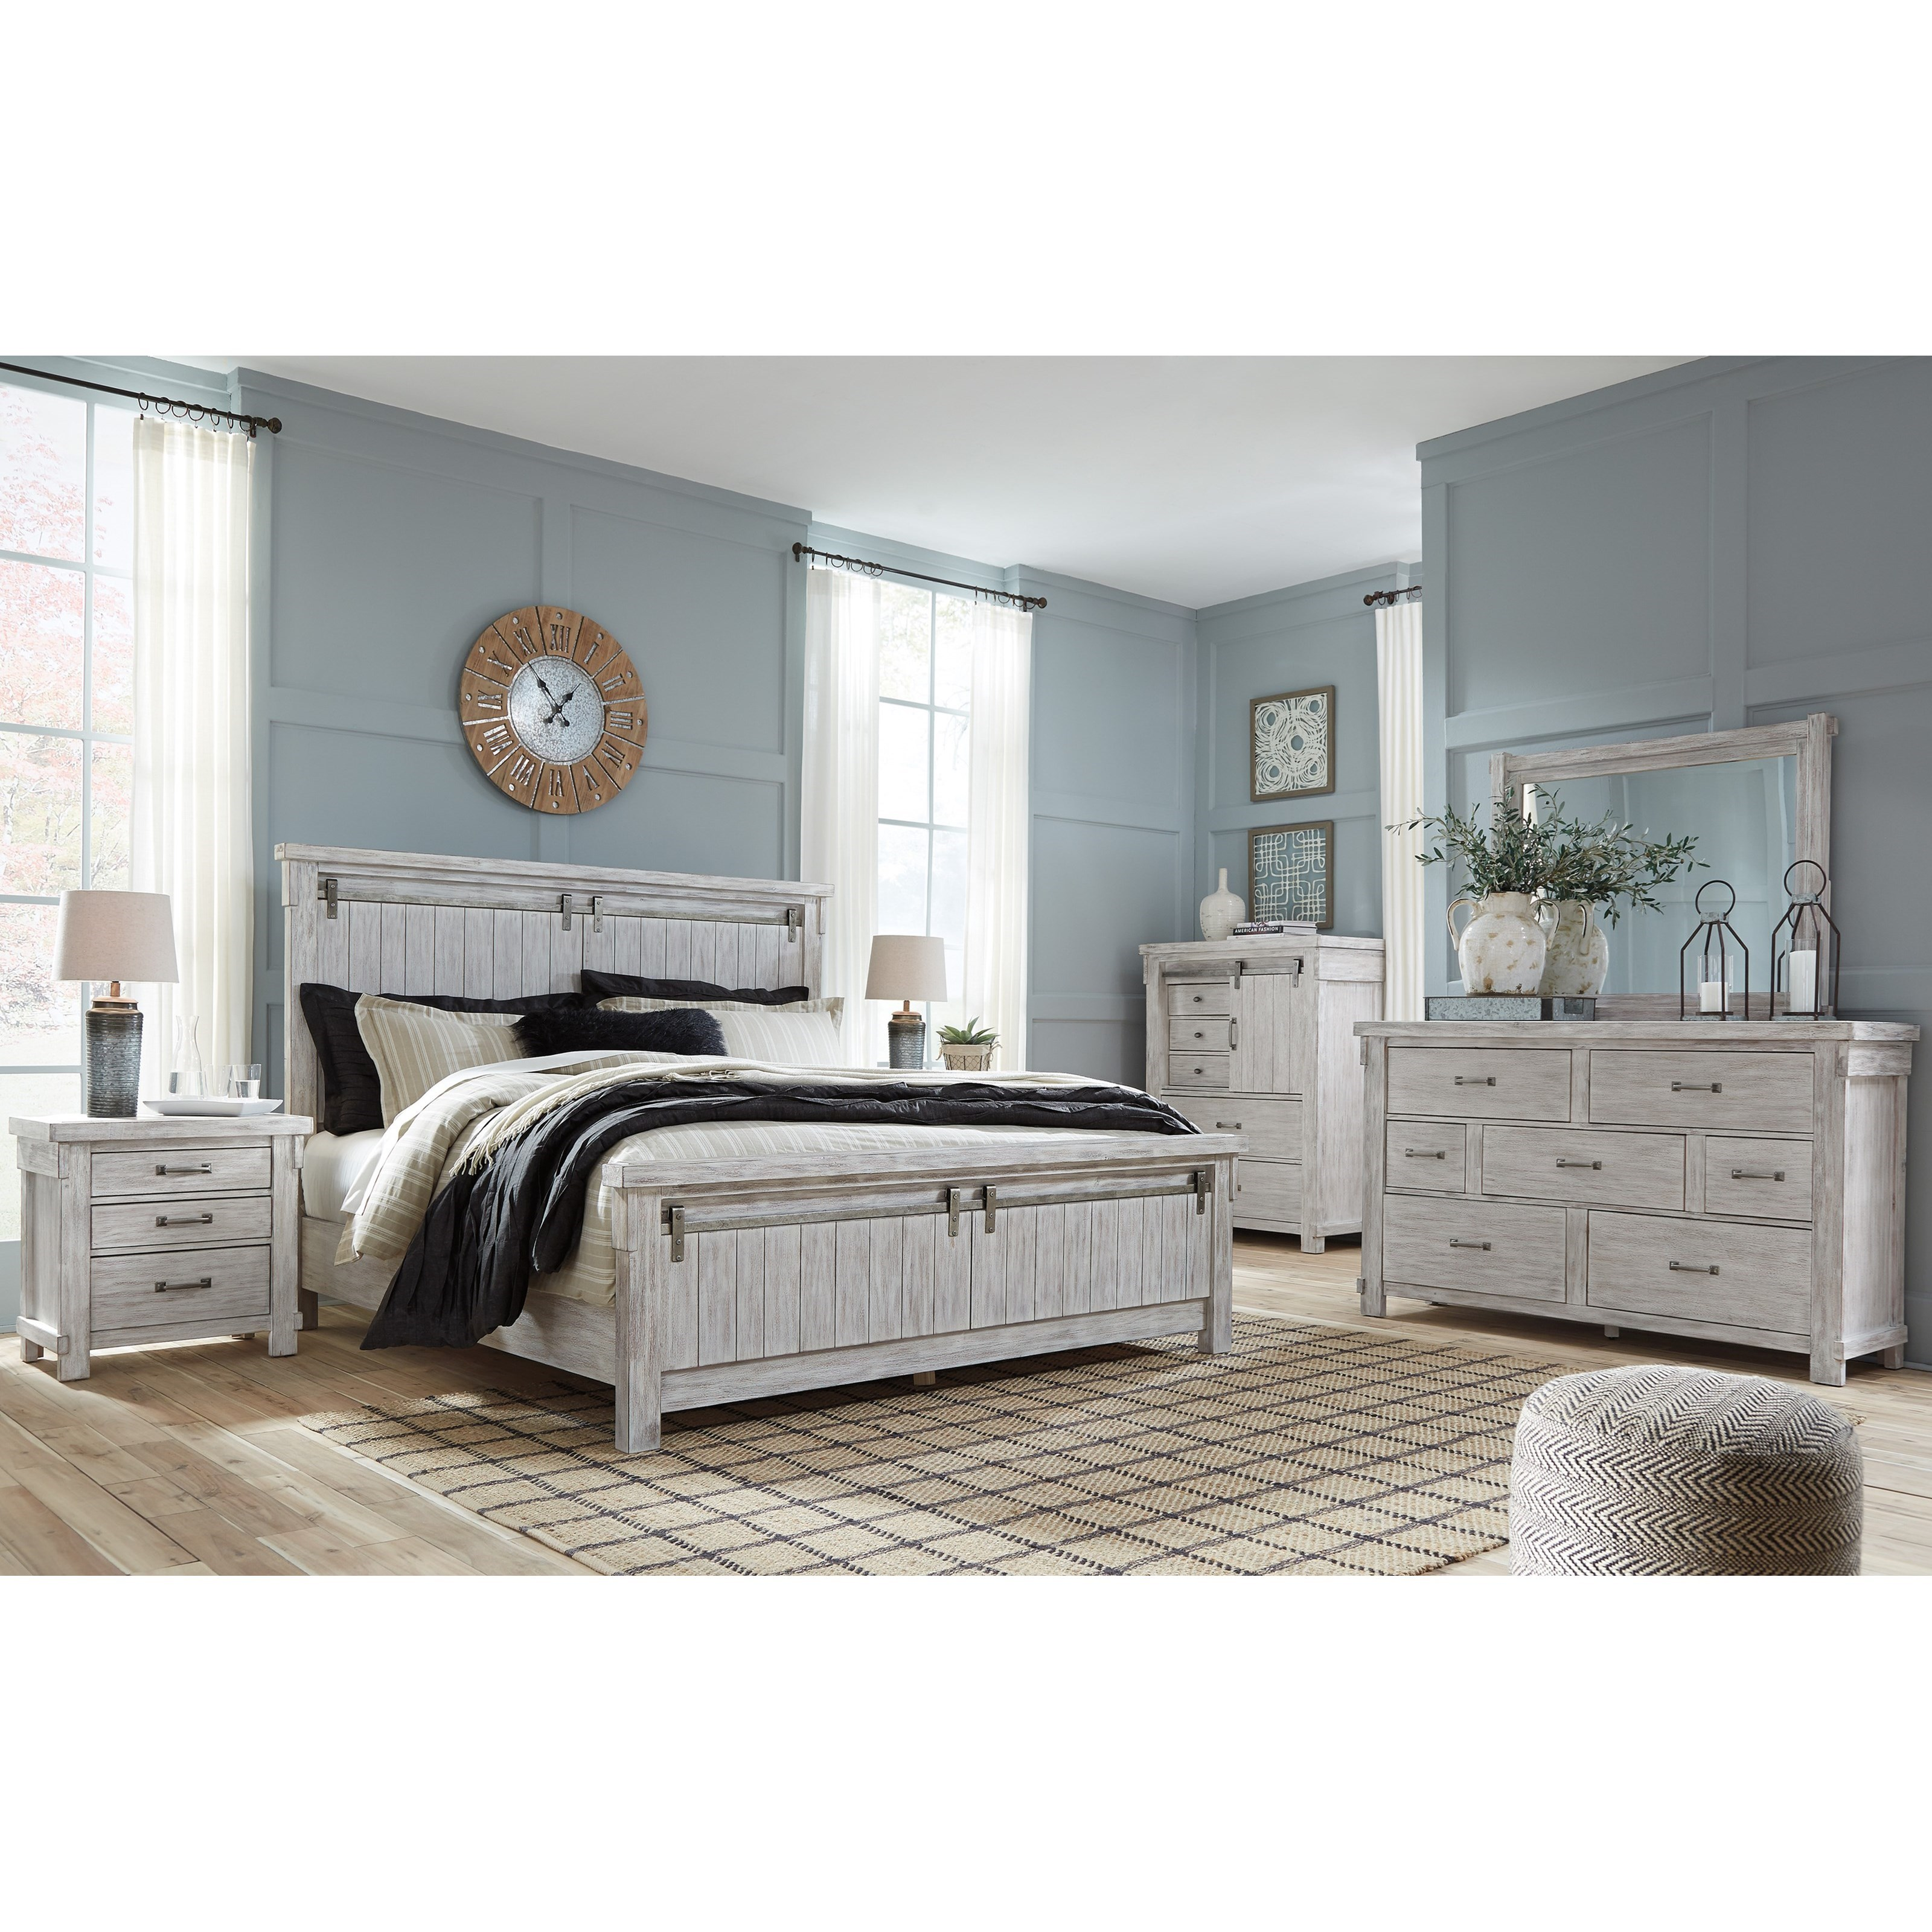 Brashland Queen Bedroom Group by Signature Design by Ashley at Sparks HomeStore